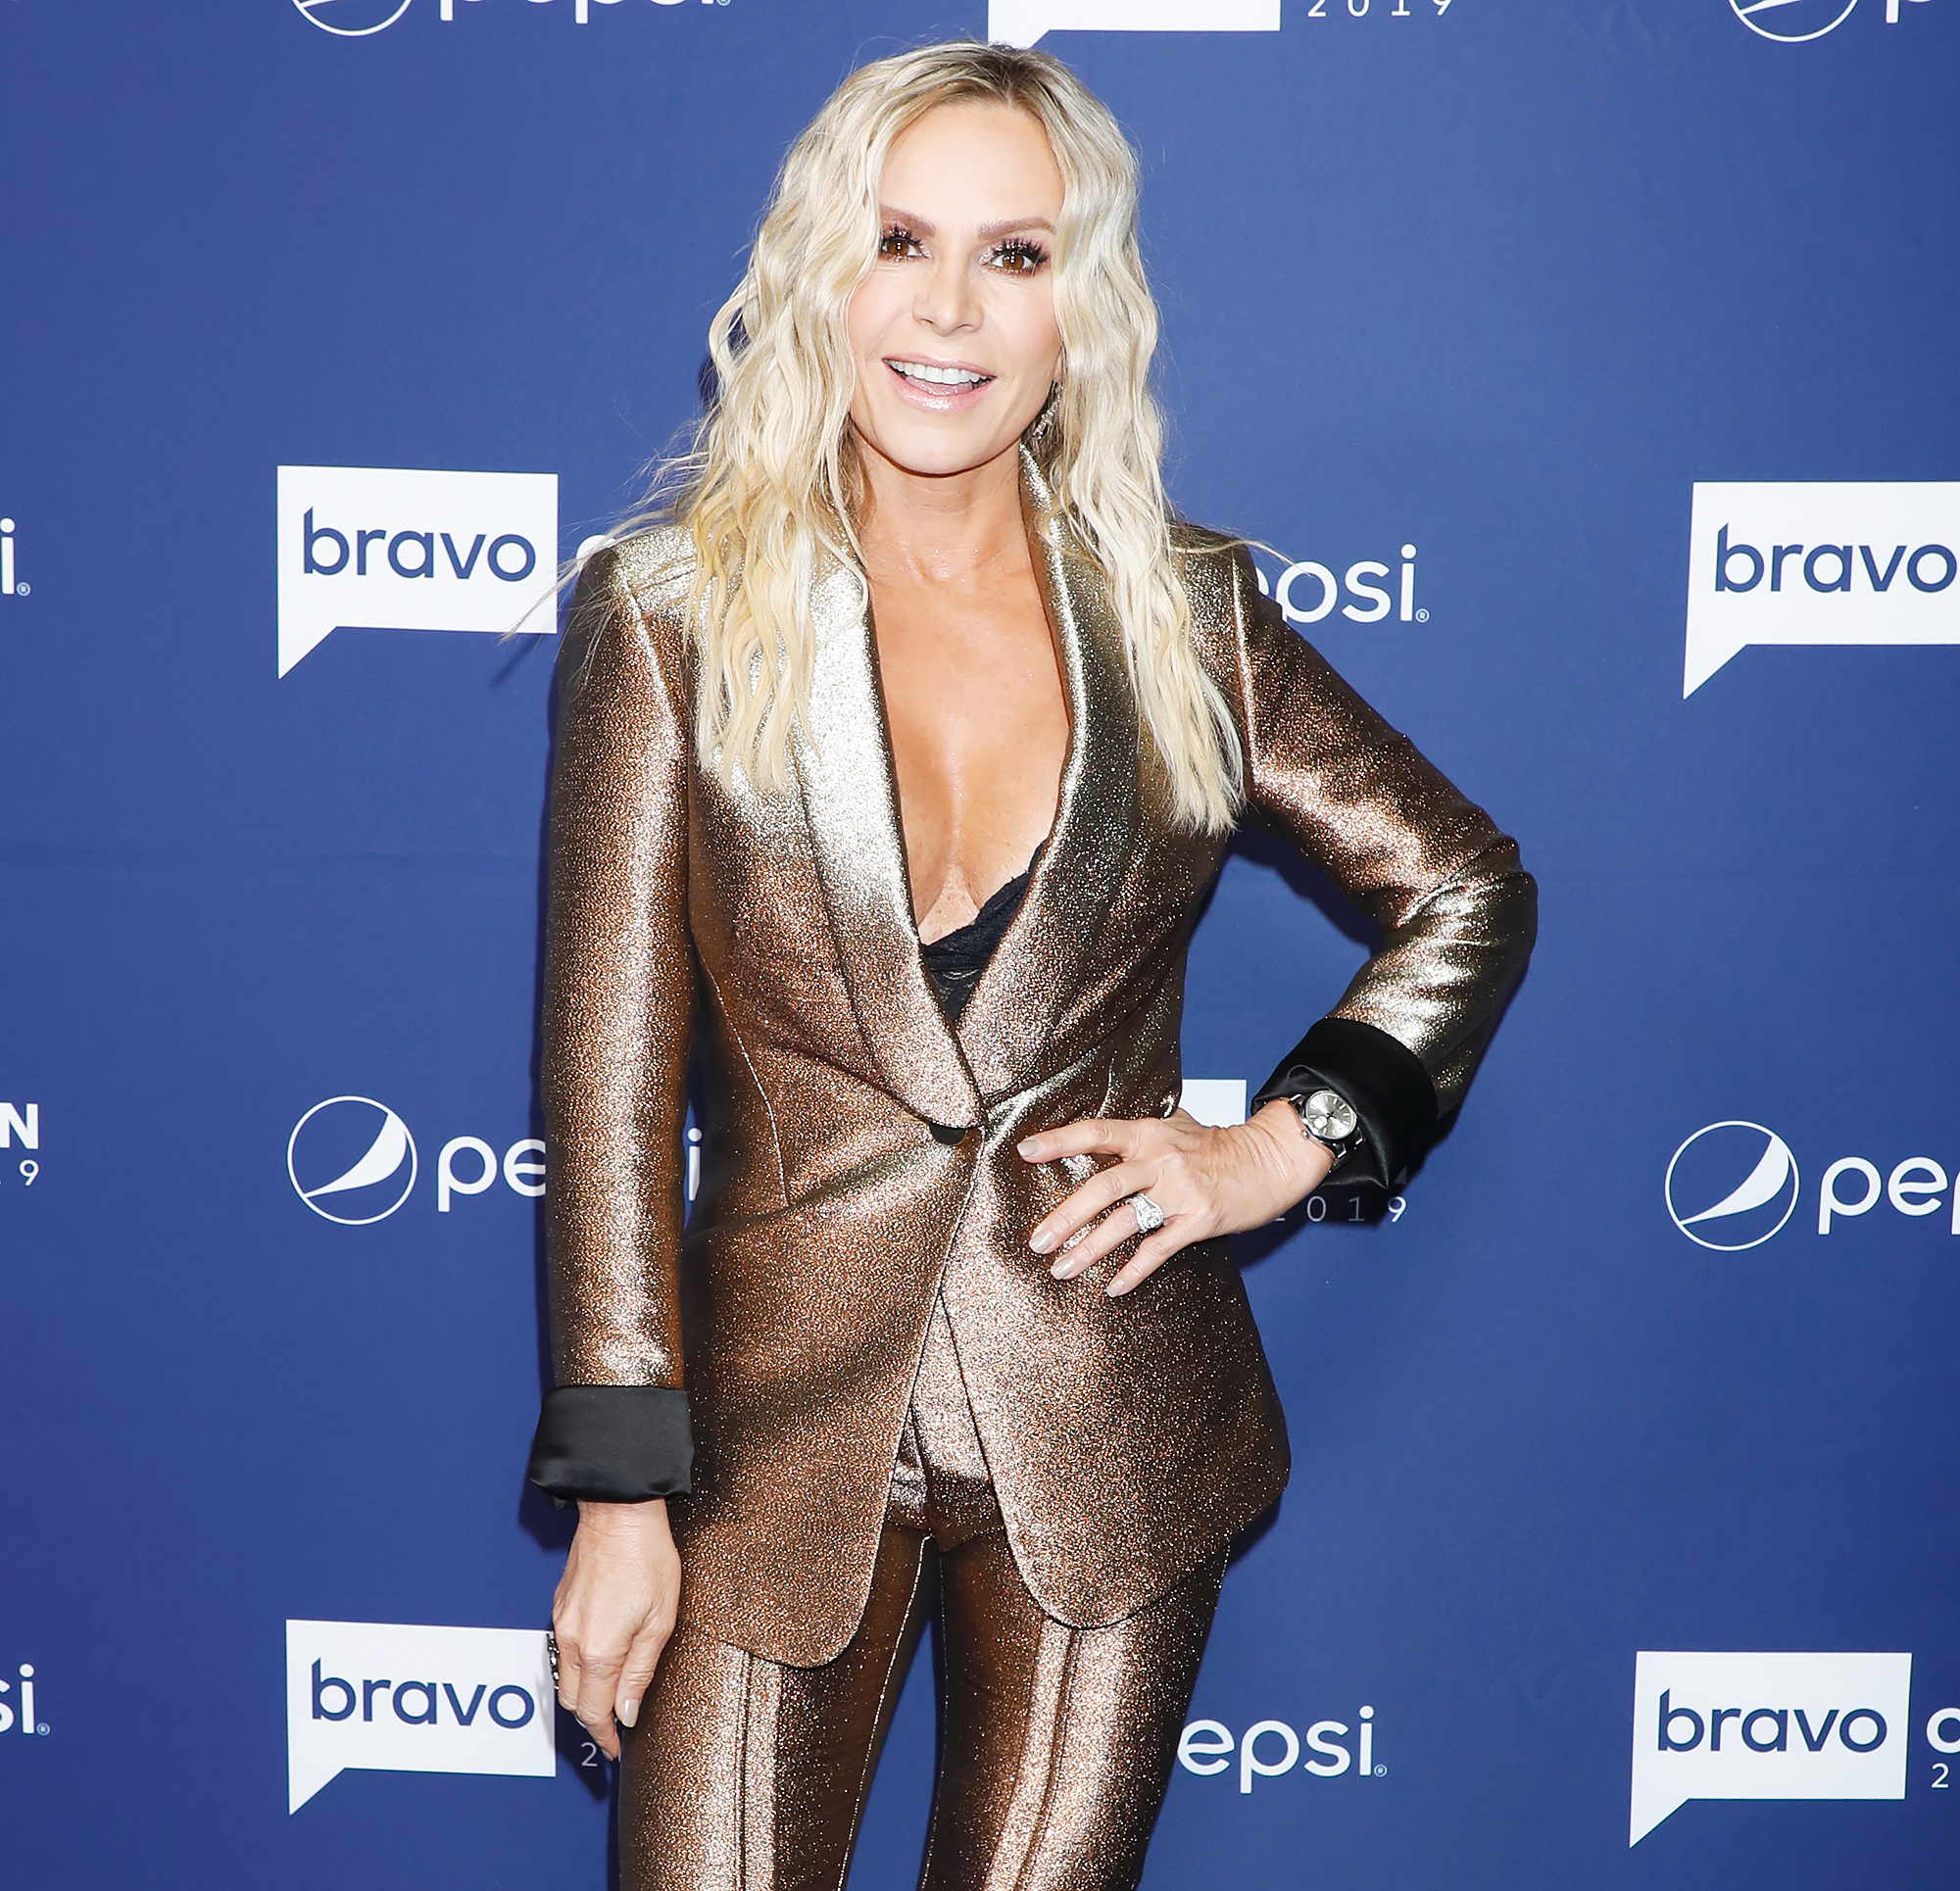 Tamra Judge Told RHOC to F--k Off When They Offered Her a Limited Role